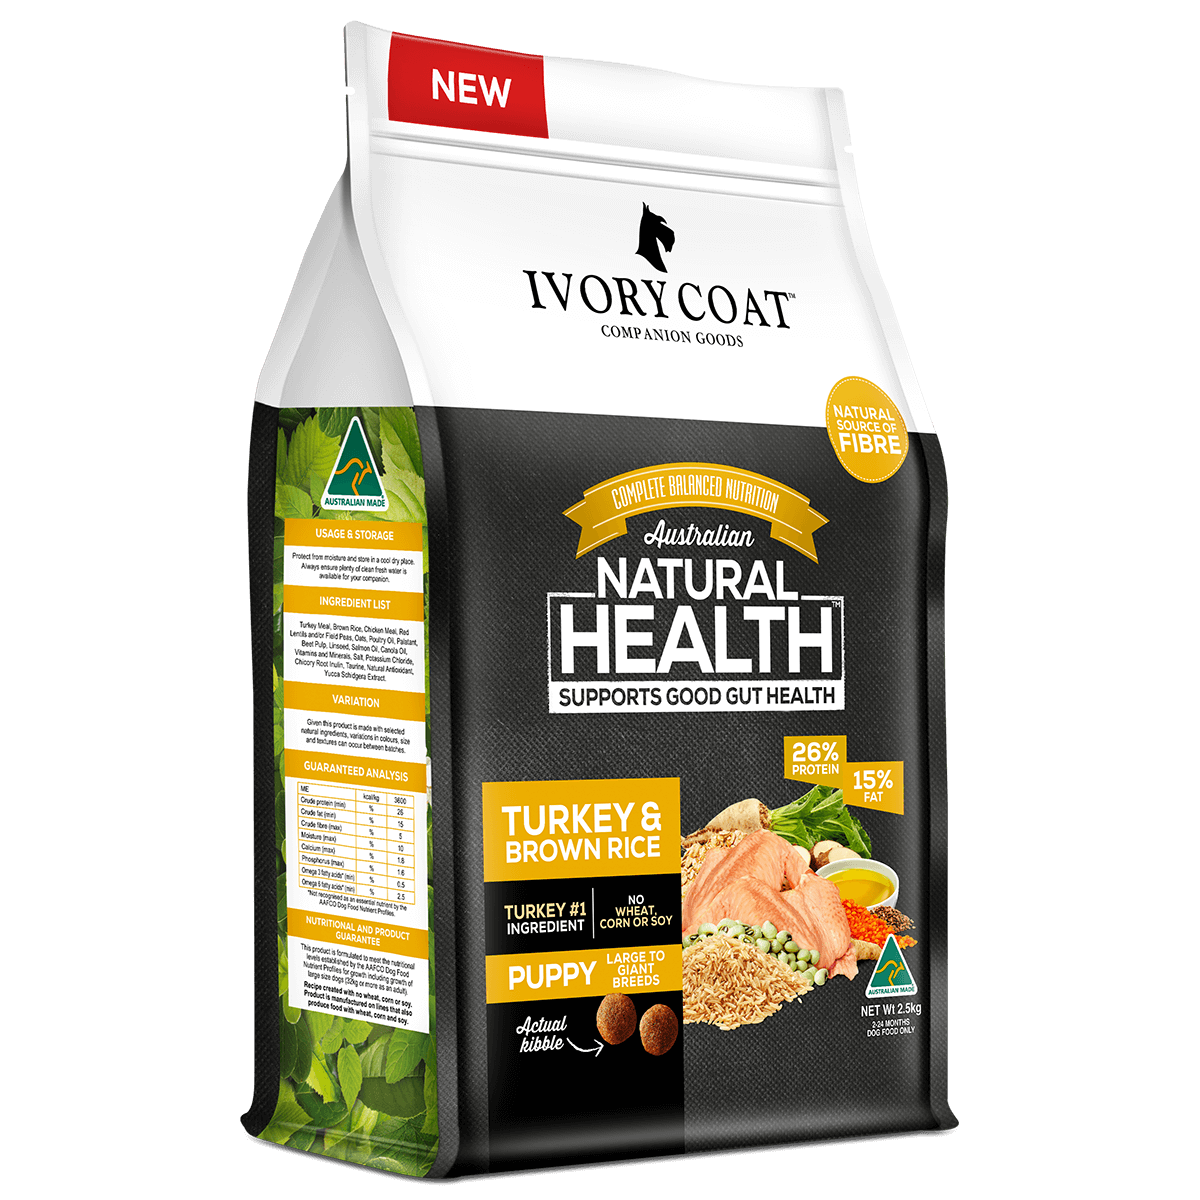 Ivory Coat | Dry Puppy Large Turkey & Brown Rice 2.5kg | Dry Dog Food | Left of pack